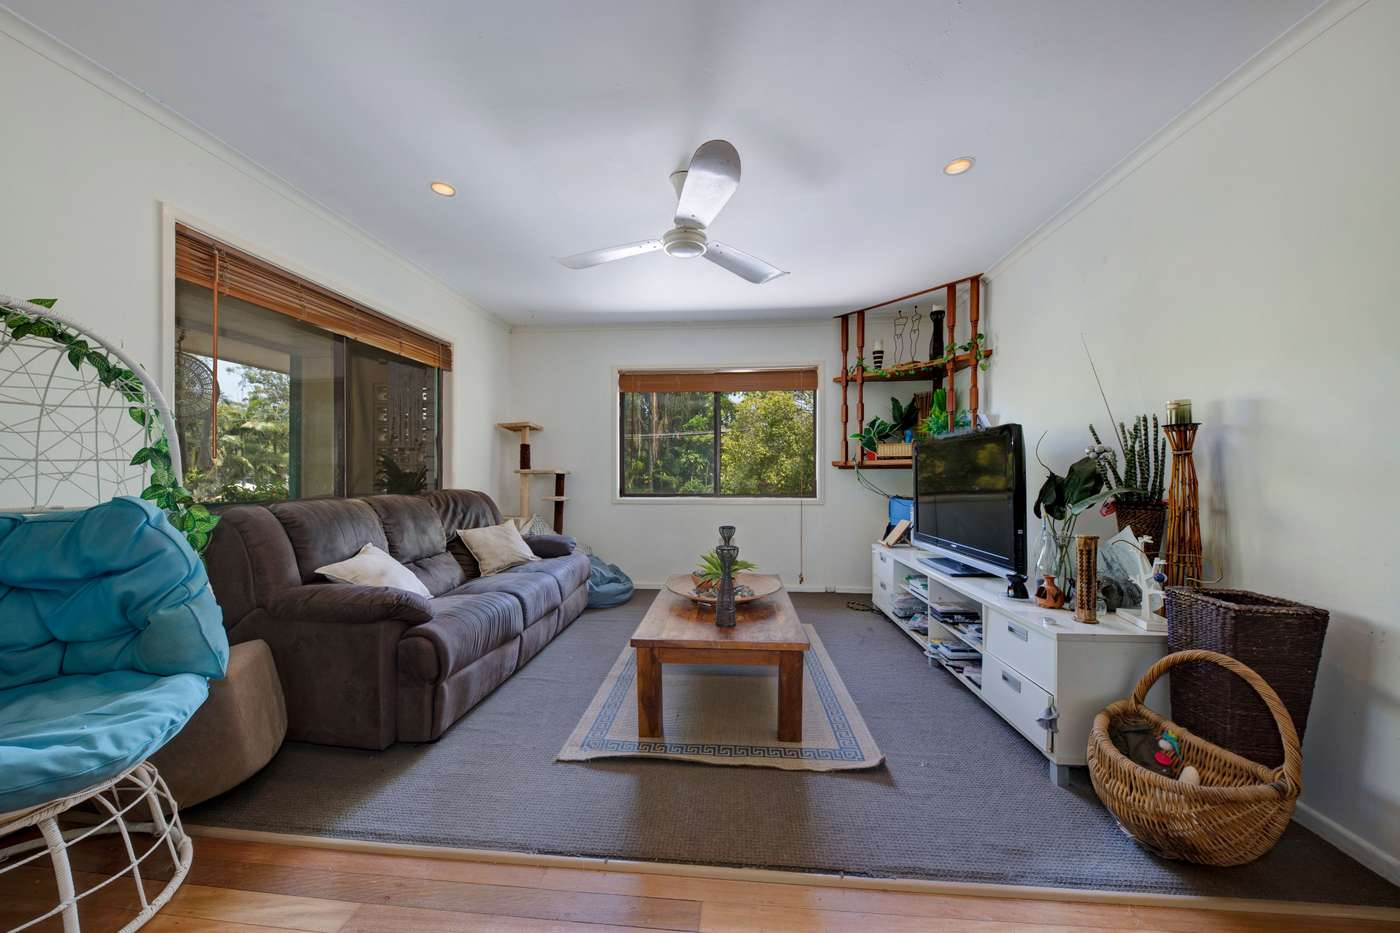 Main view of Homely house listing, 4 Wren Crescent, Buderim, QLD 4556